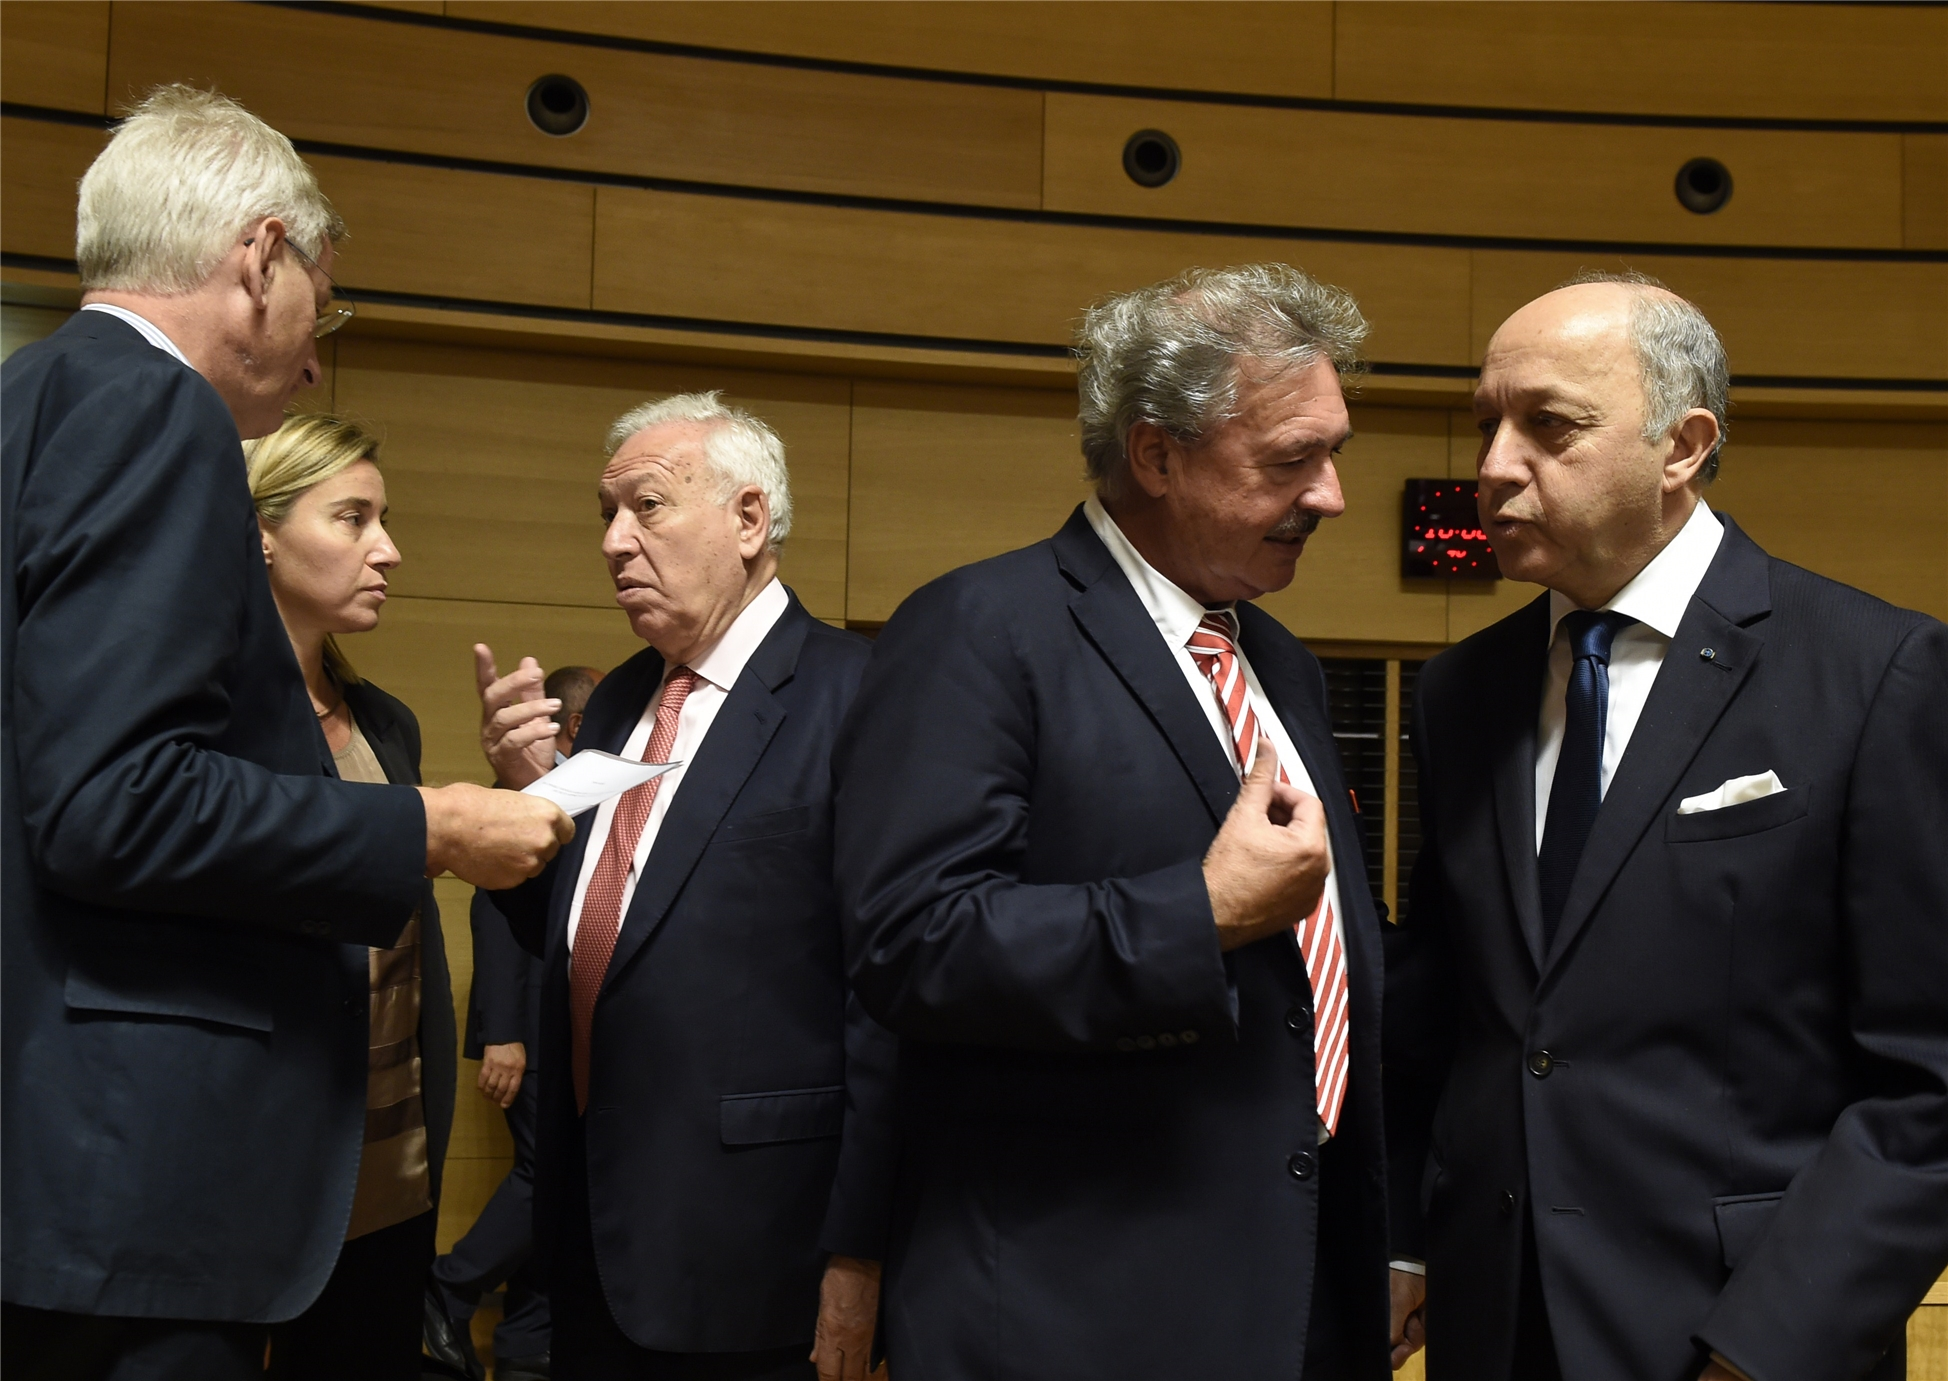 Luxebourg Foreign minister Jean Asselborn (2ndR) talks with French Foreign Affairs minister Laurent Fabius (R) during a Foreign Affairs Council meeting in Luxembourg on June, 23 2014